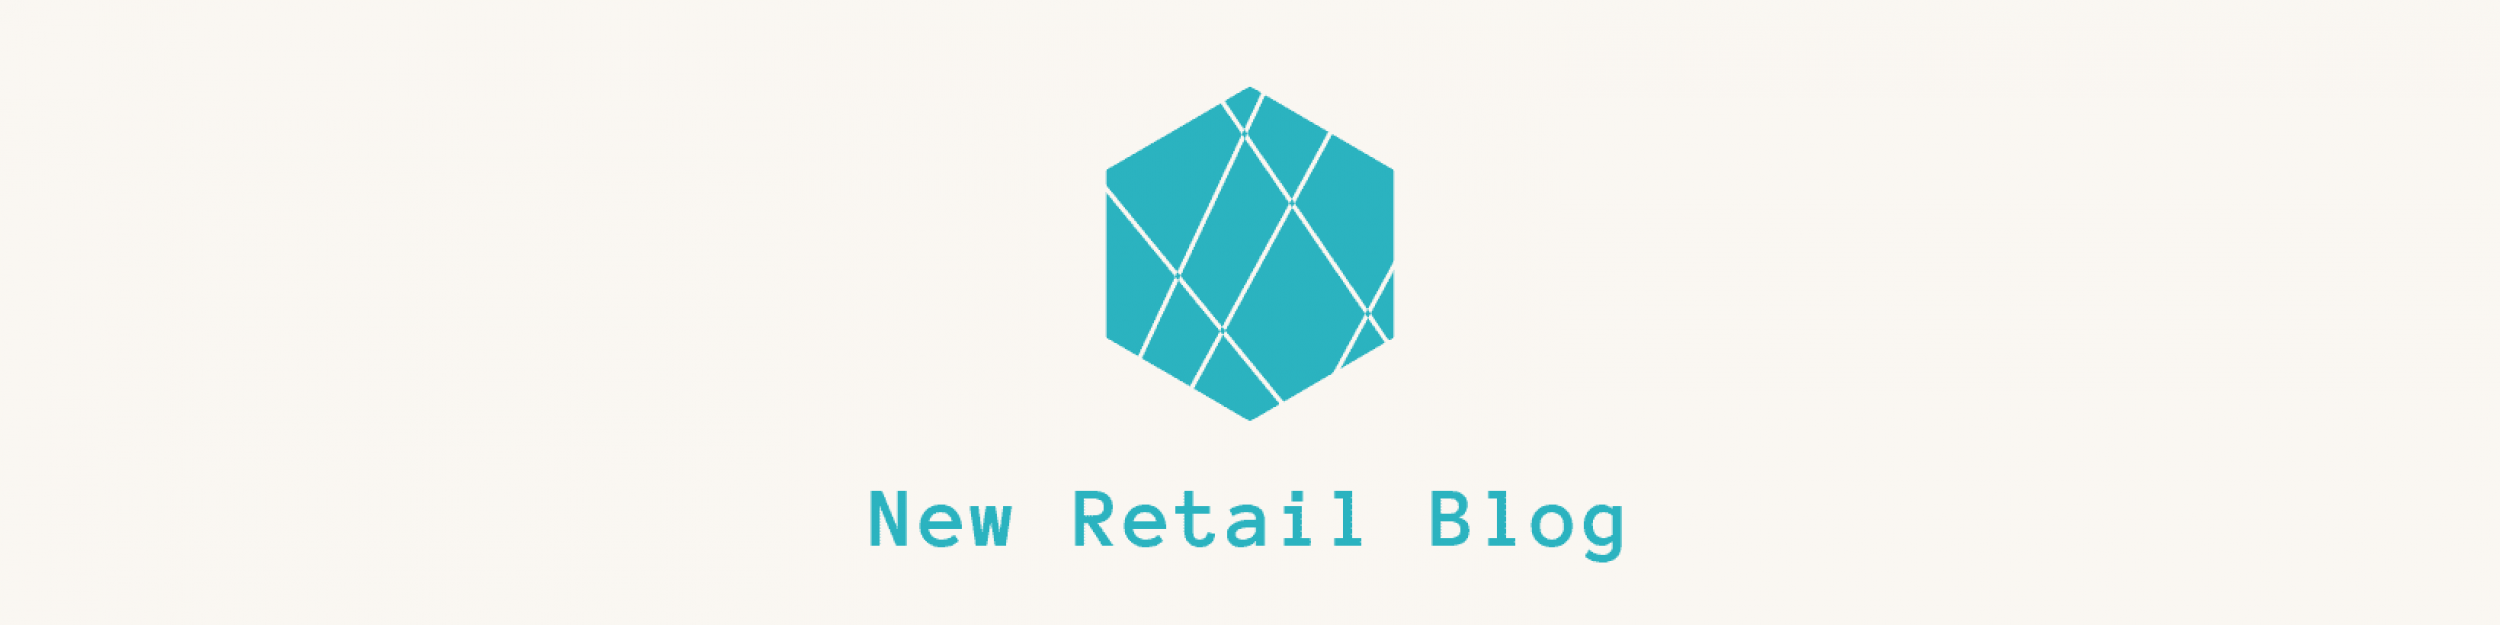 New Retail Blog